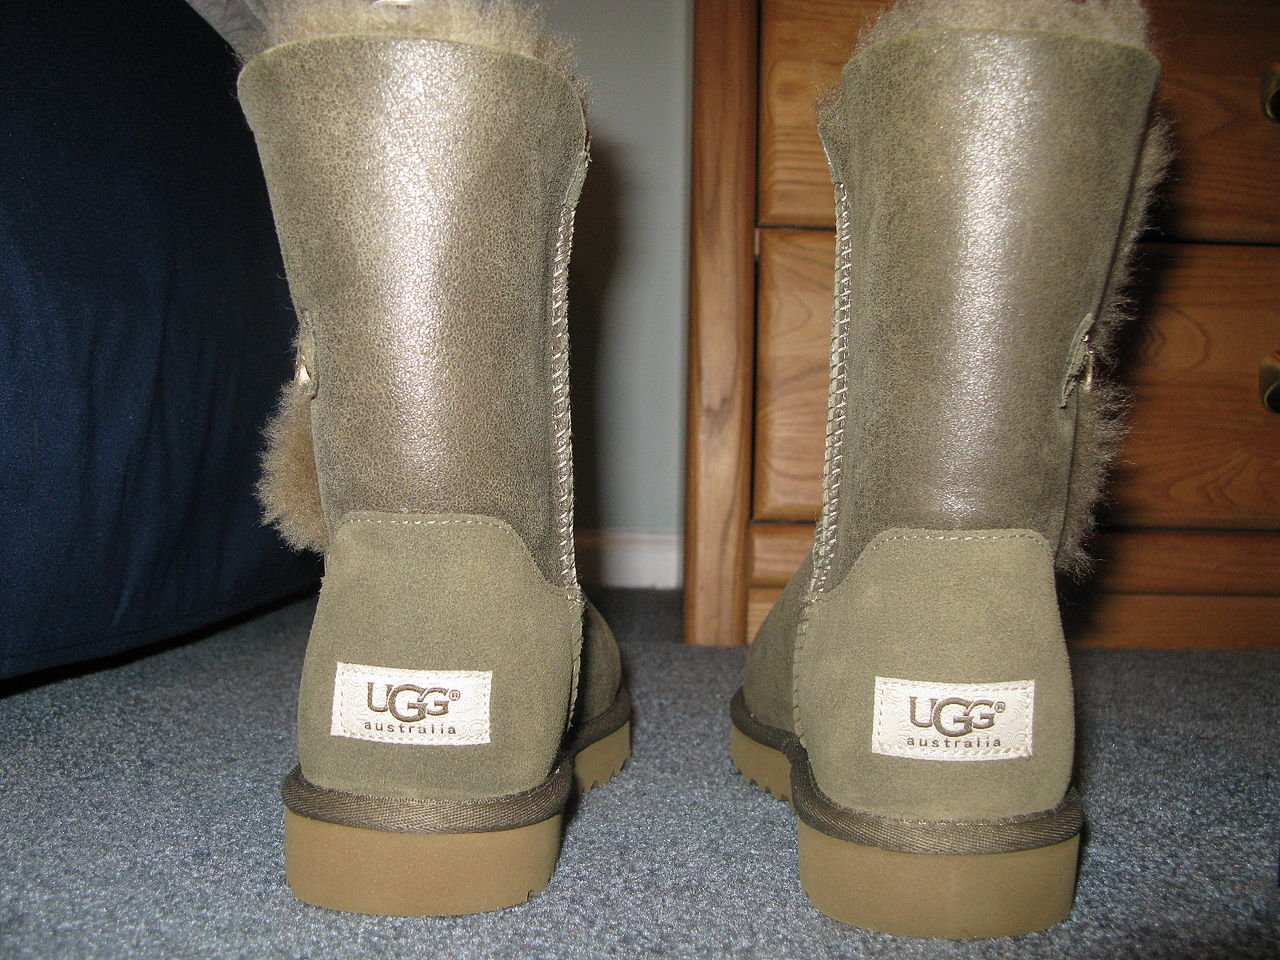 Uggs Chaussures montres Wikipedia montres Wikipedia pas Chaussures cher mgc 7a68005 - christopherbooneavalere.website